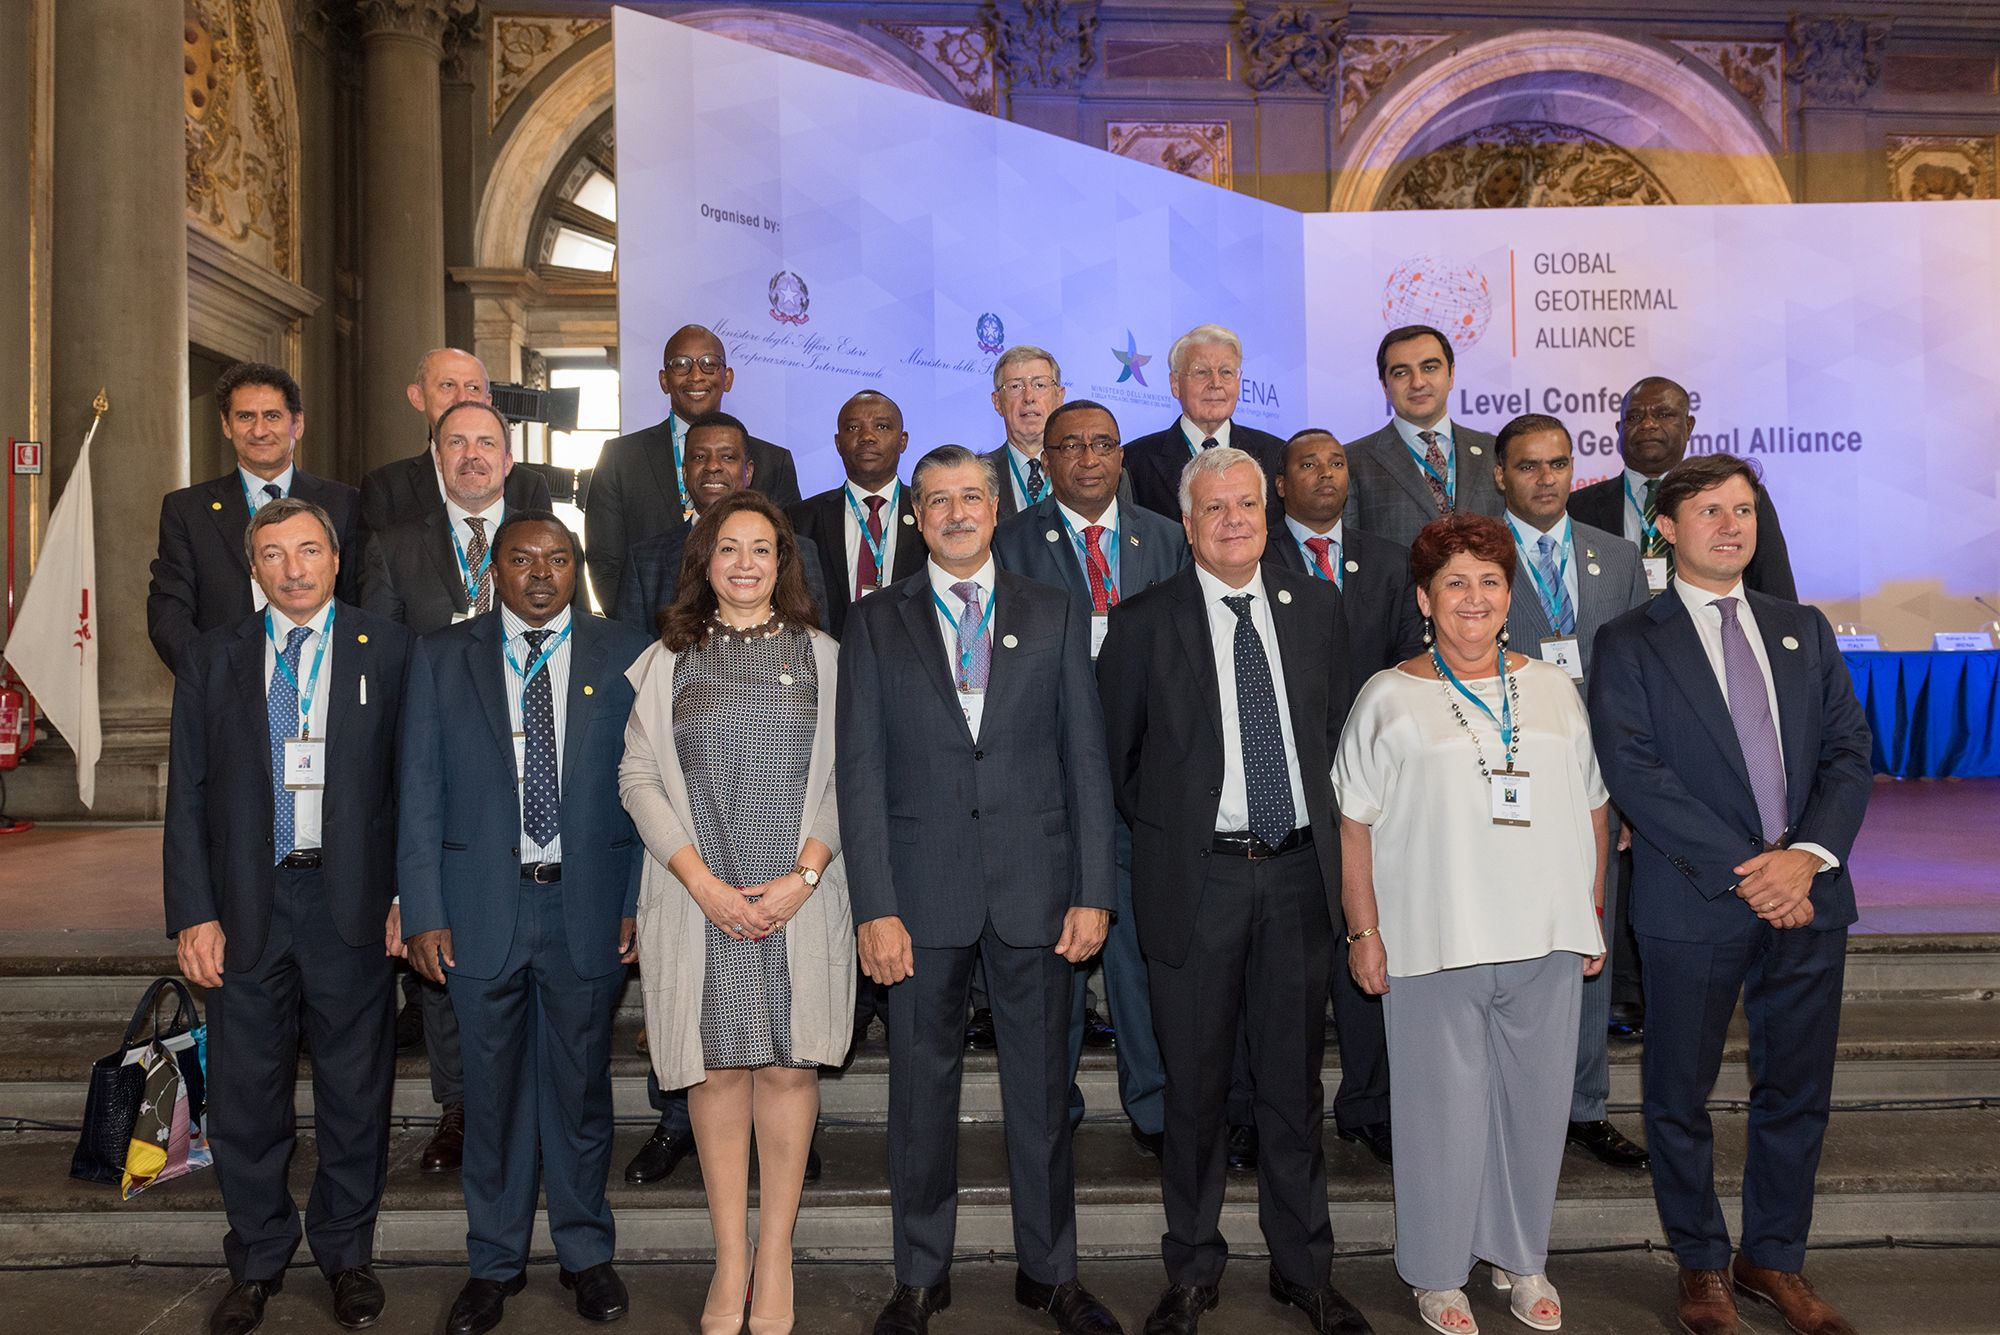 High level conference of the global geothermal alliance gga high level conference of the global geothermal alliance gga sciox Gallery